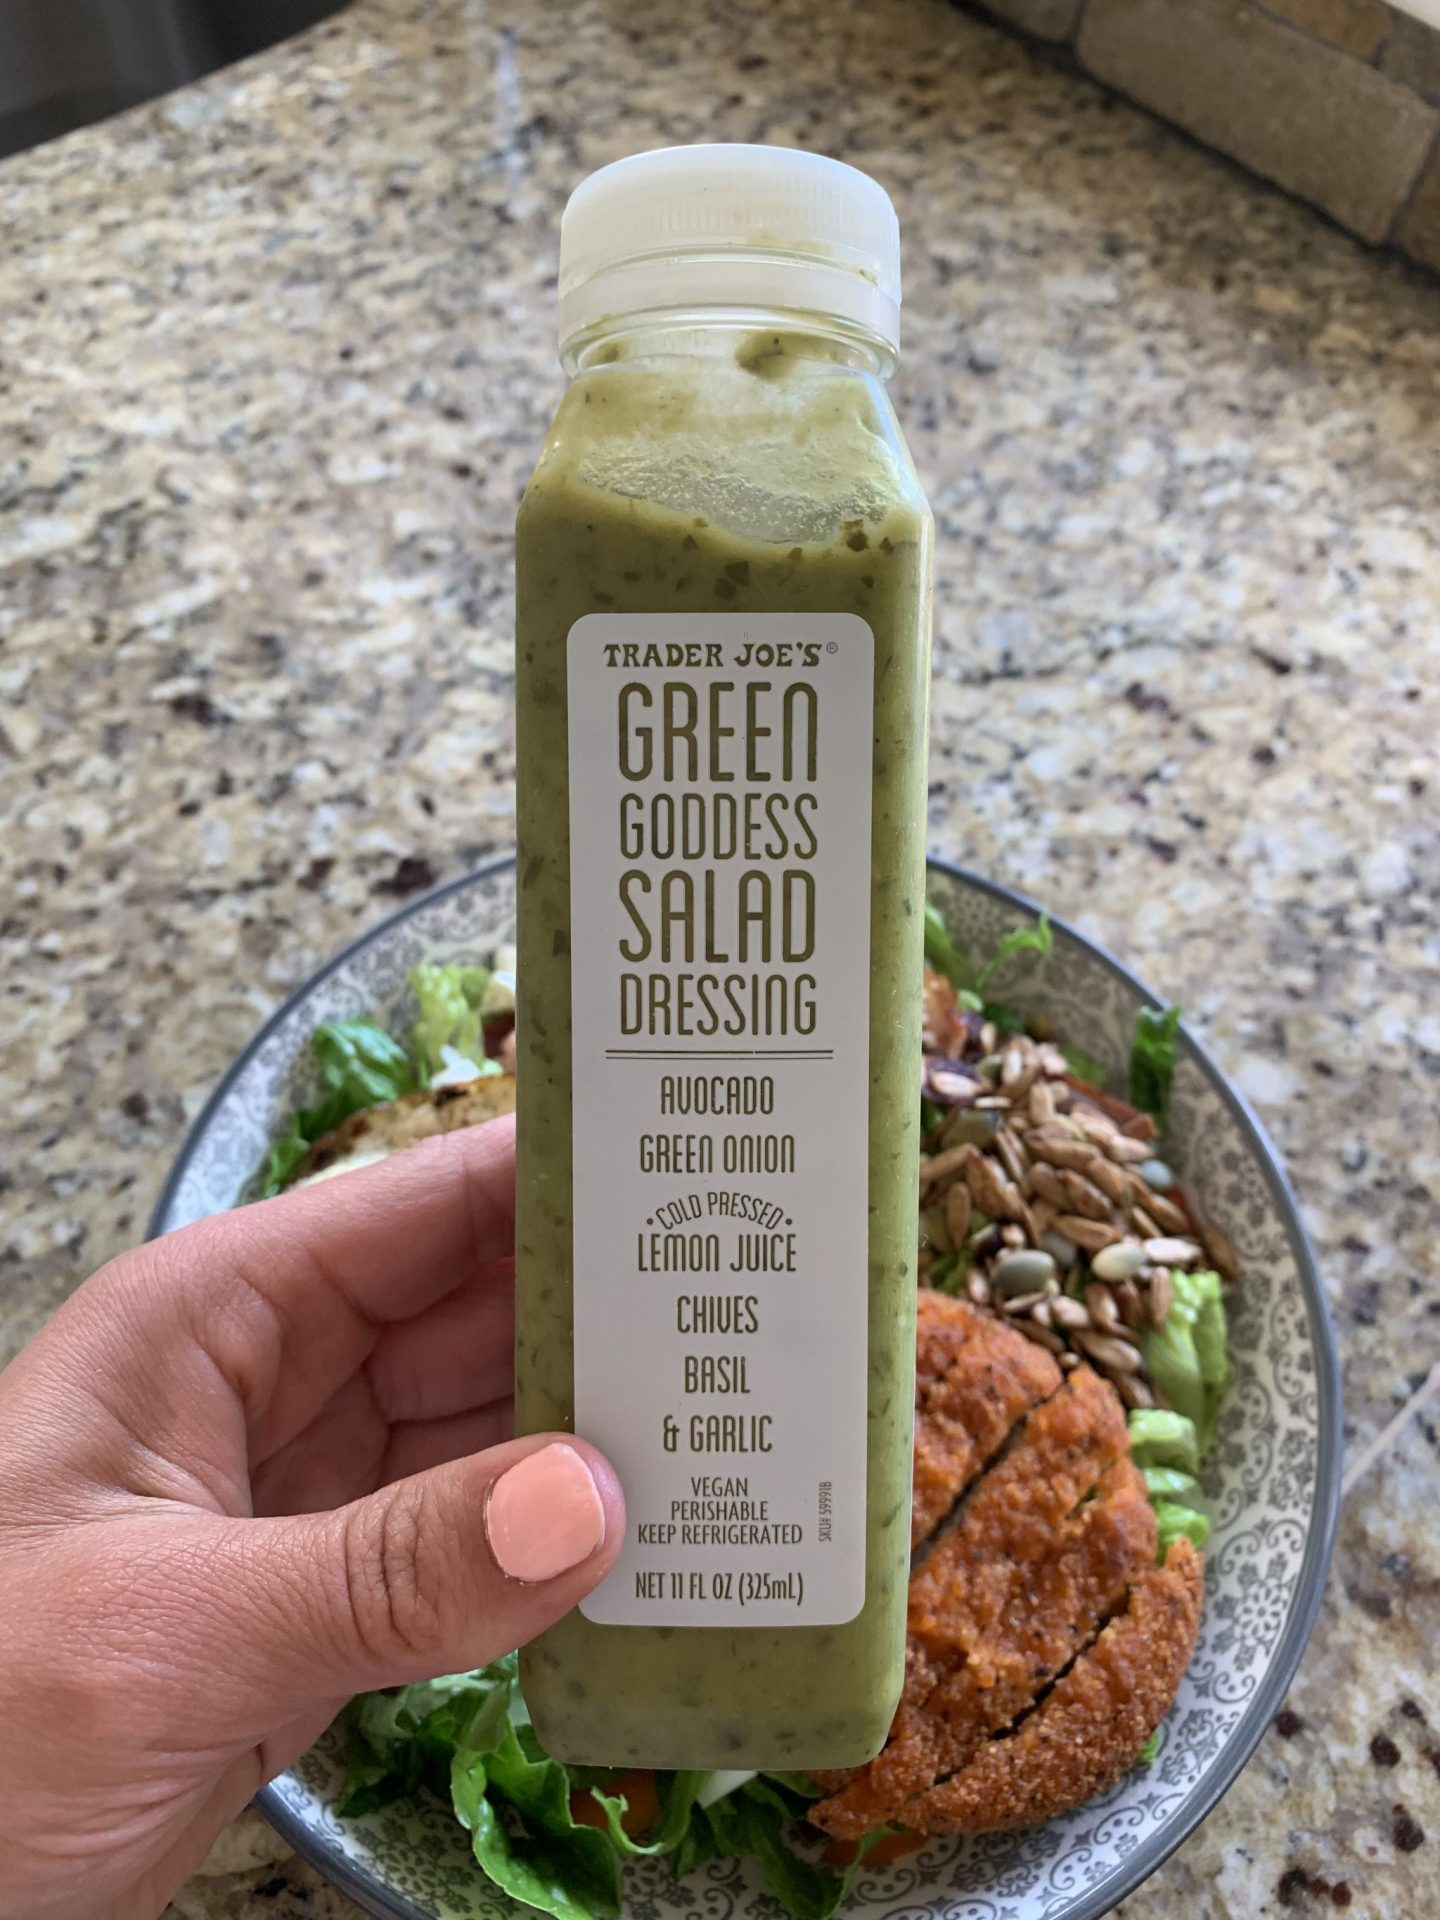 Trader Joe's Salad Dressing